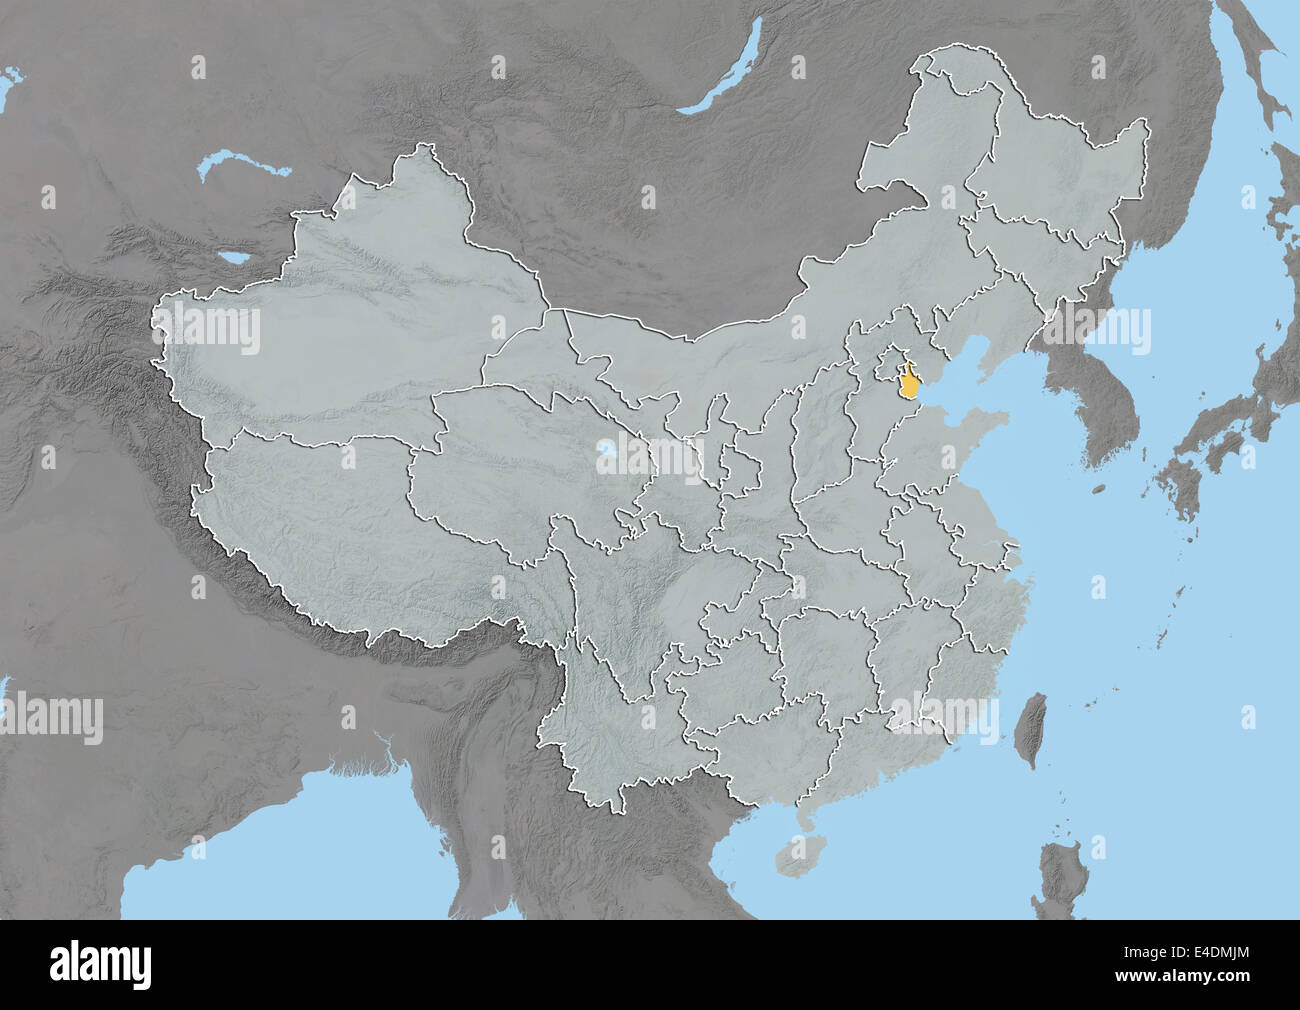 Tianjin china asia map stock photos tianjin china asia map stock tianjin china relief map stock image gumiabroncs Image collections